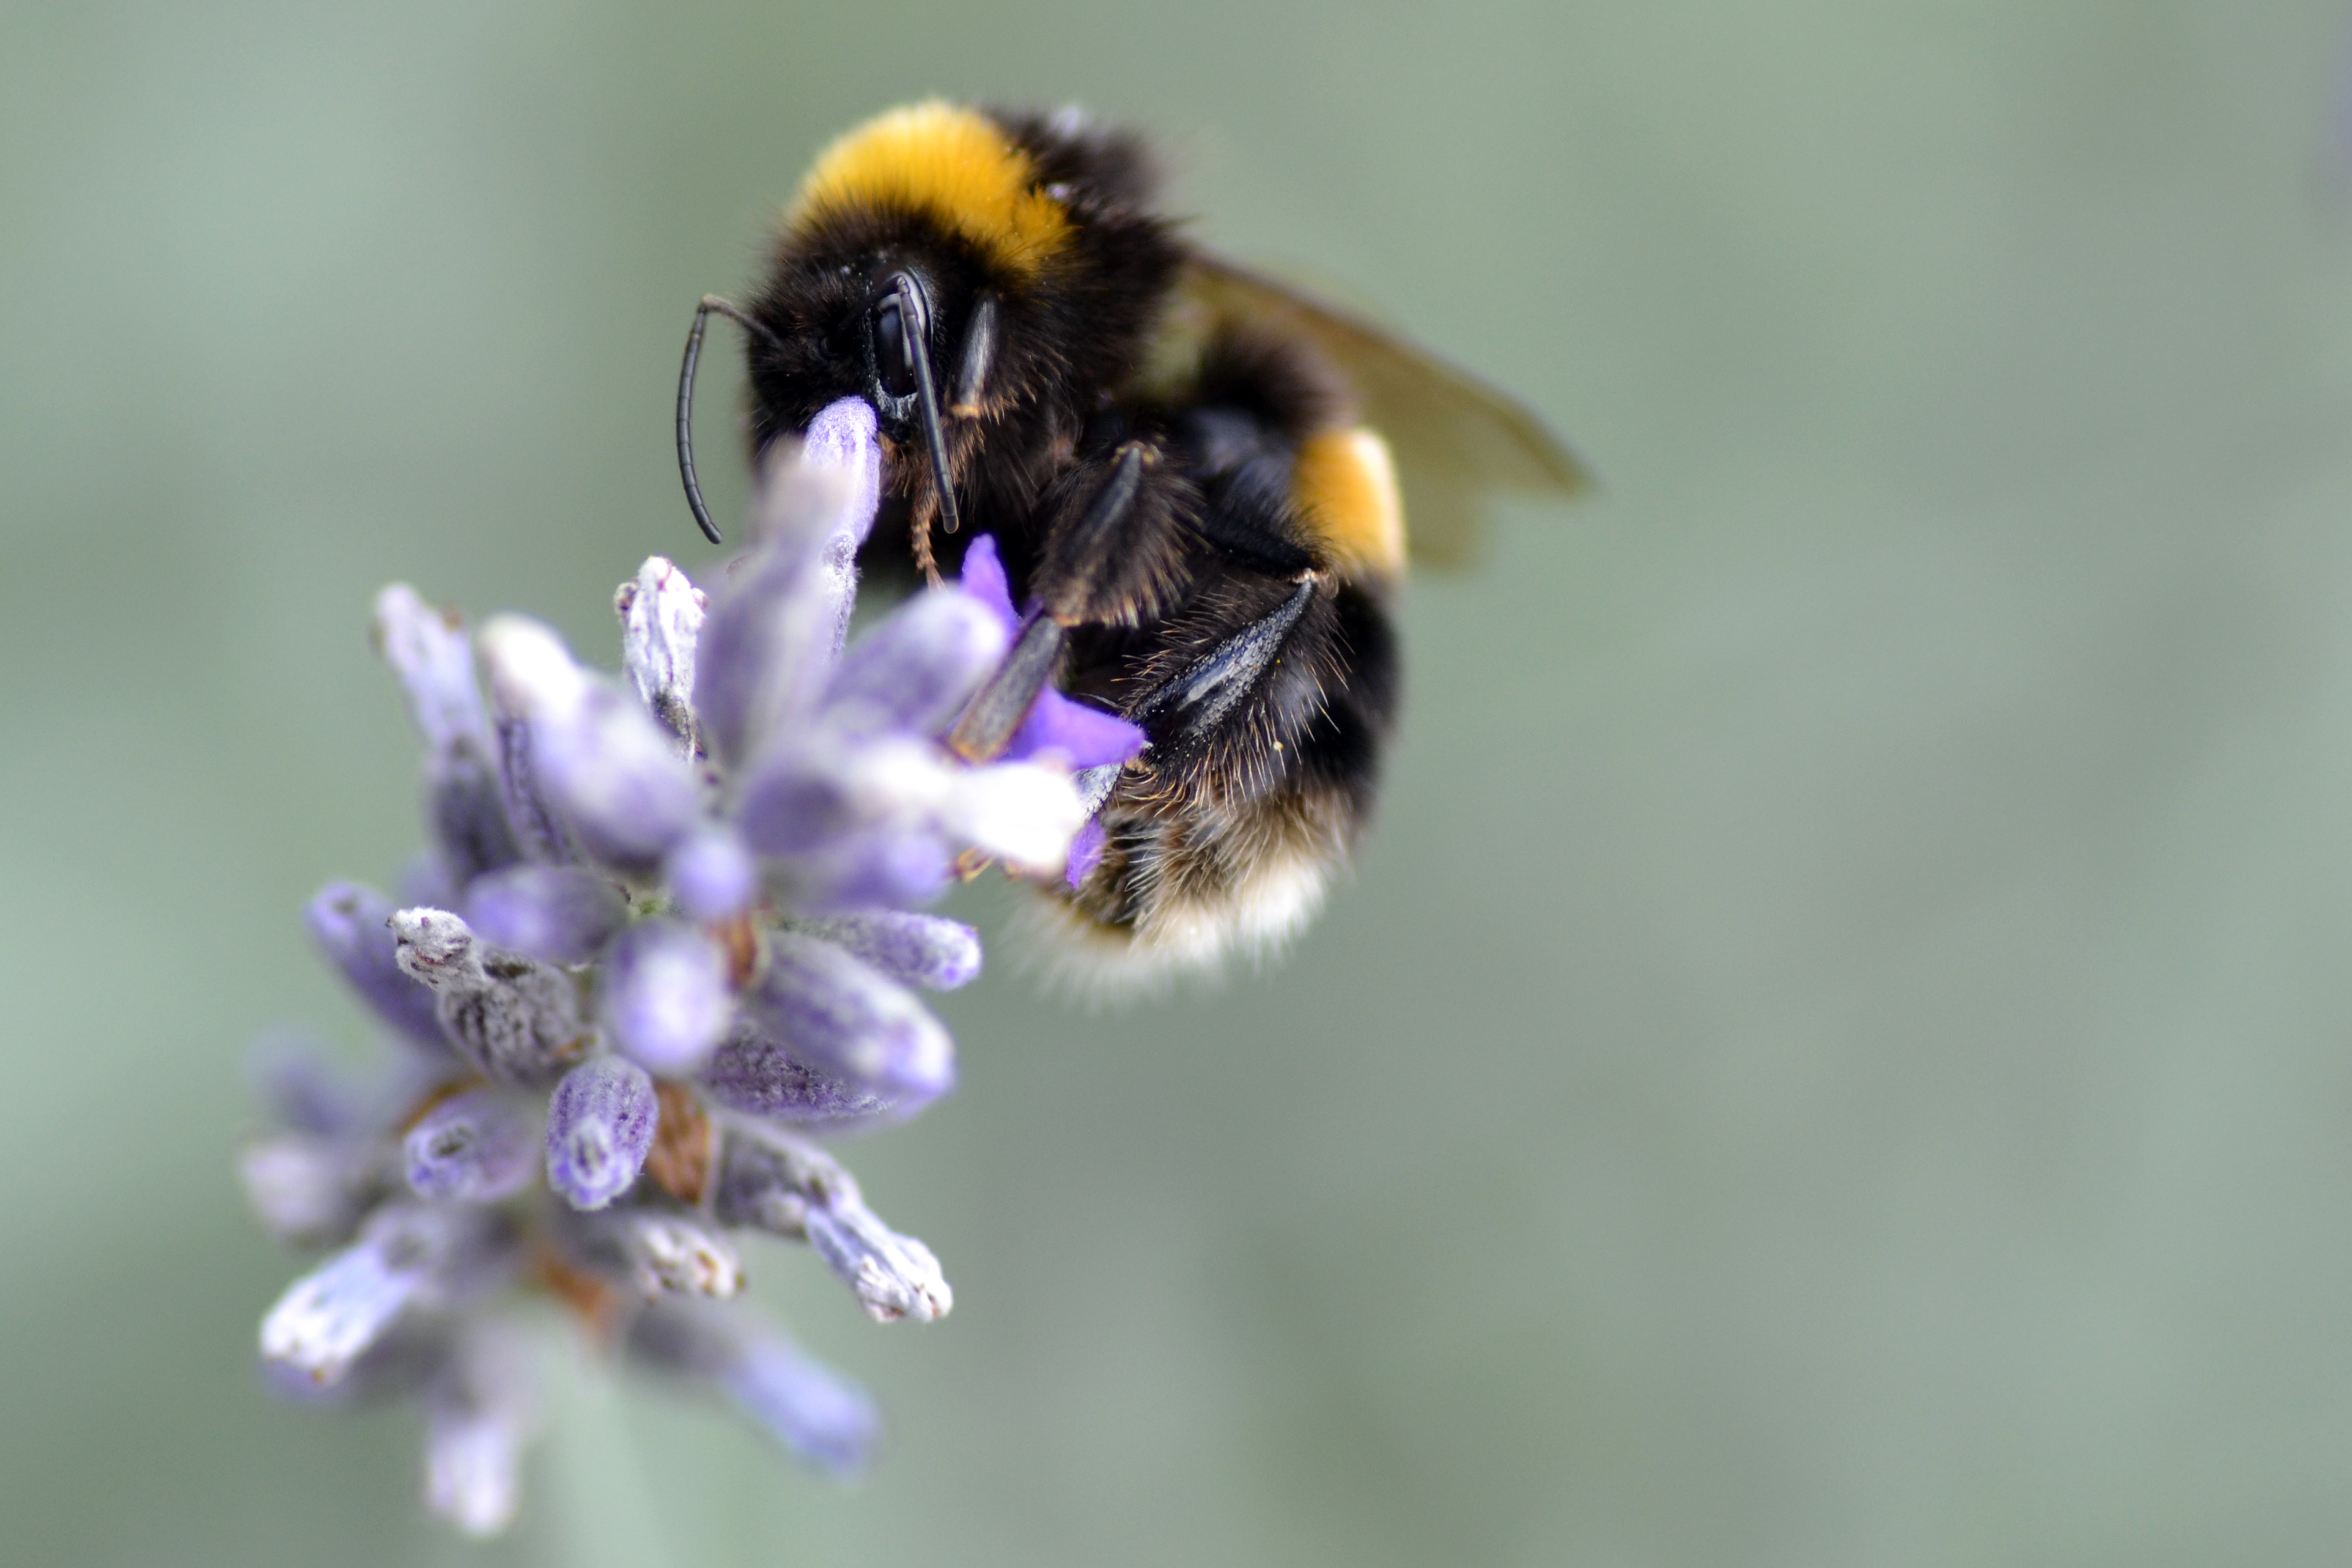 White tailed bumble bee on lavender - Image by Denise Pallett